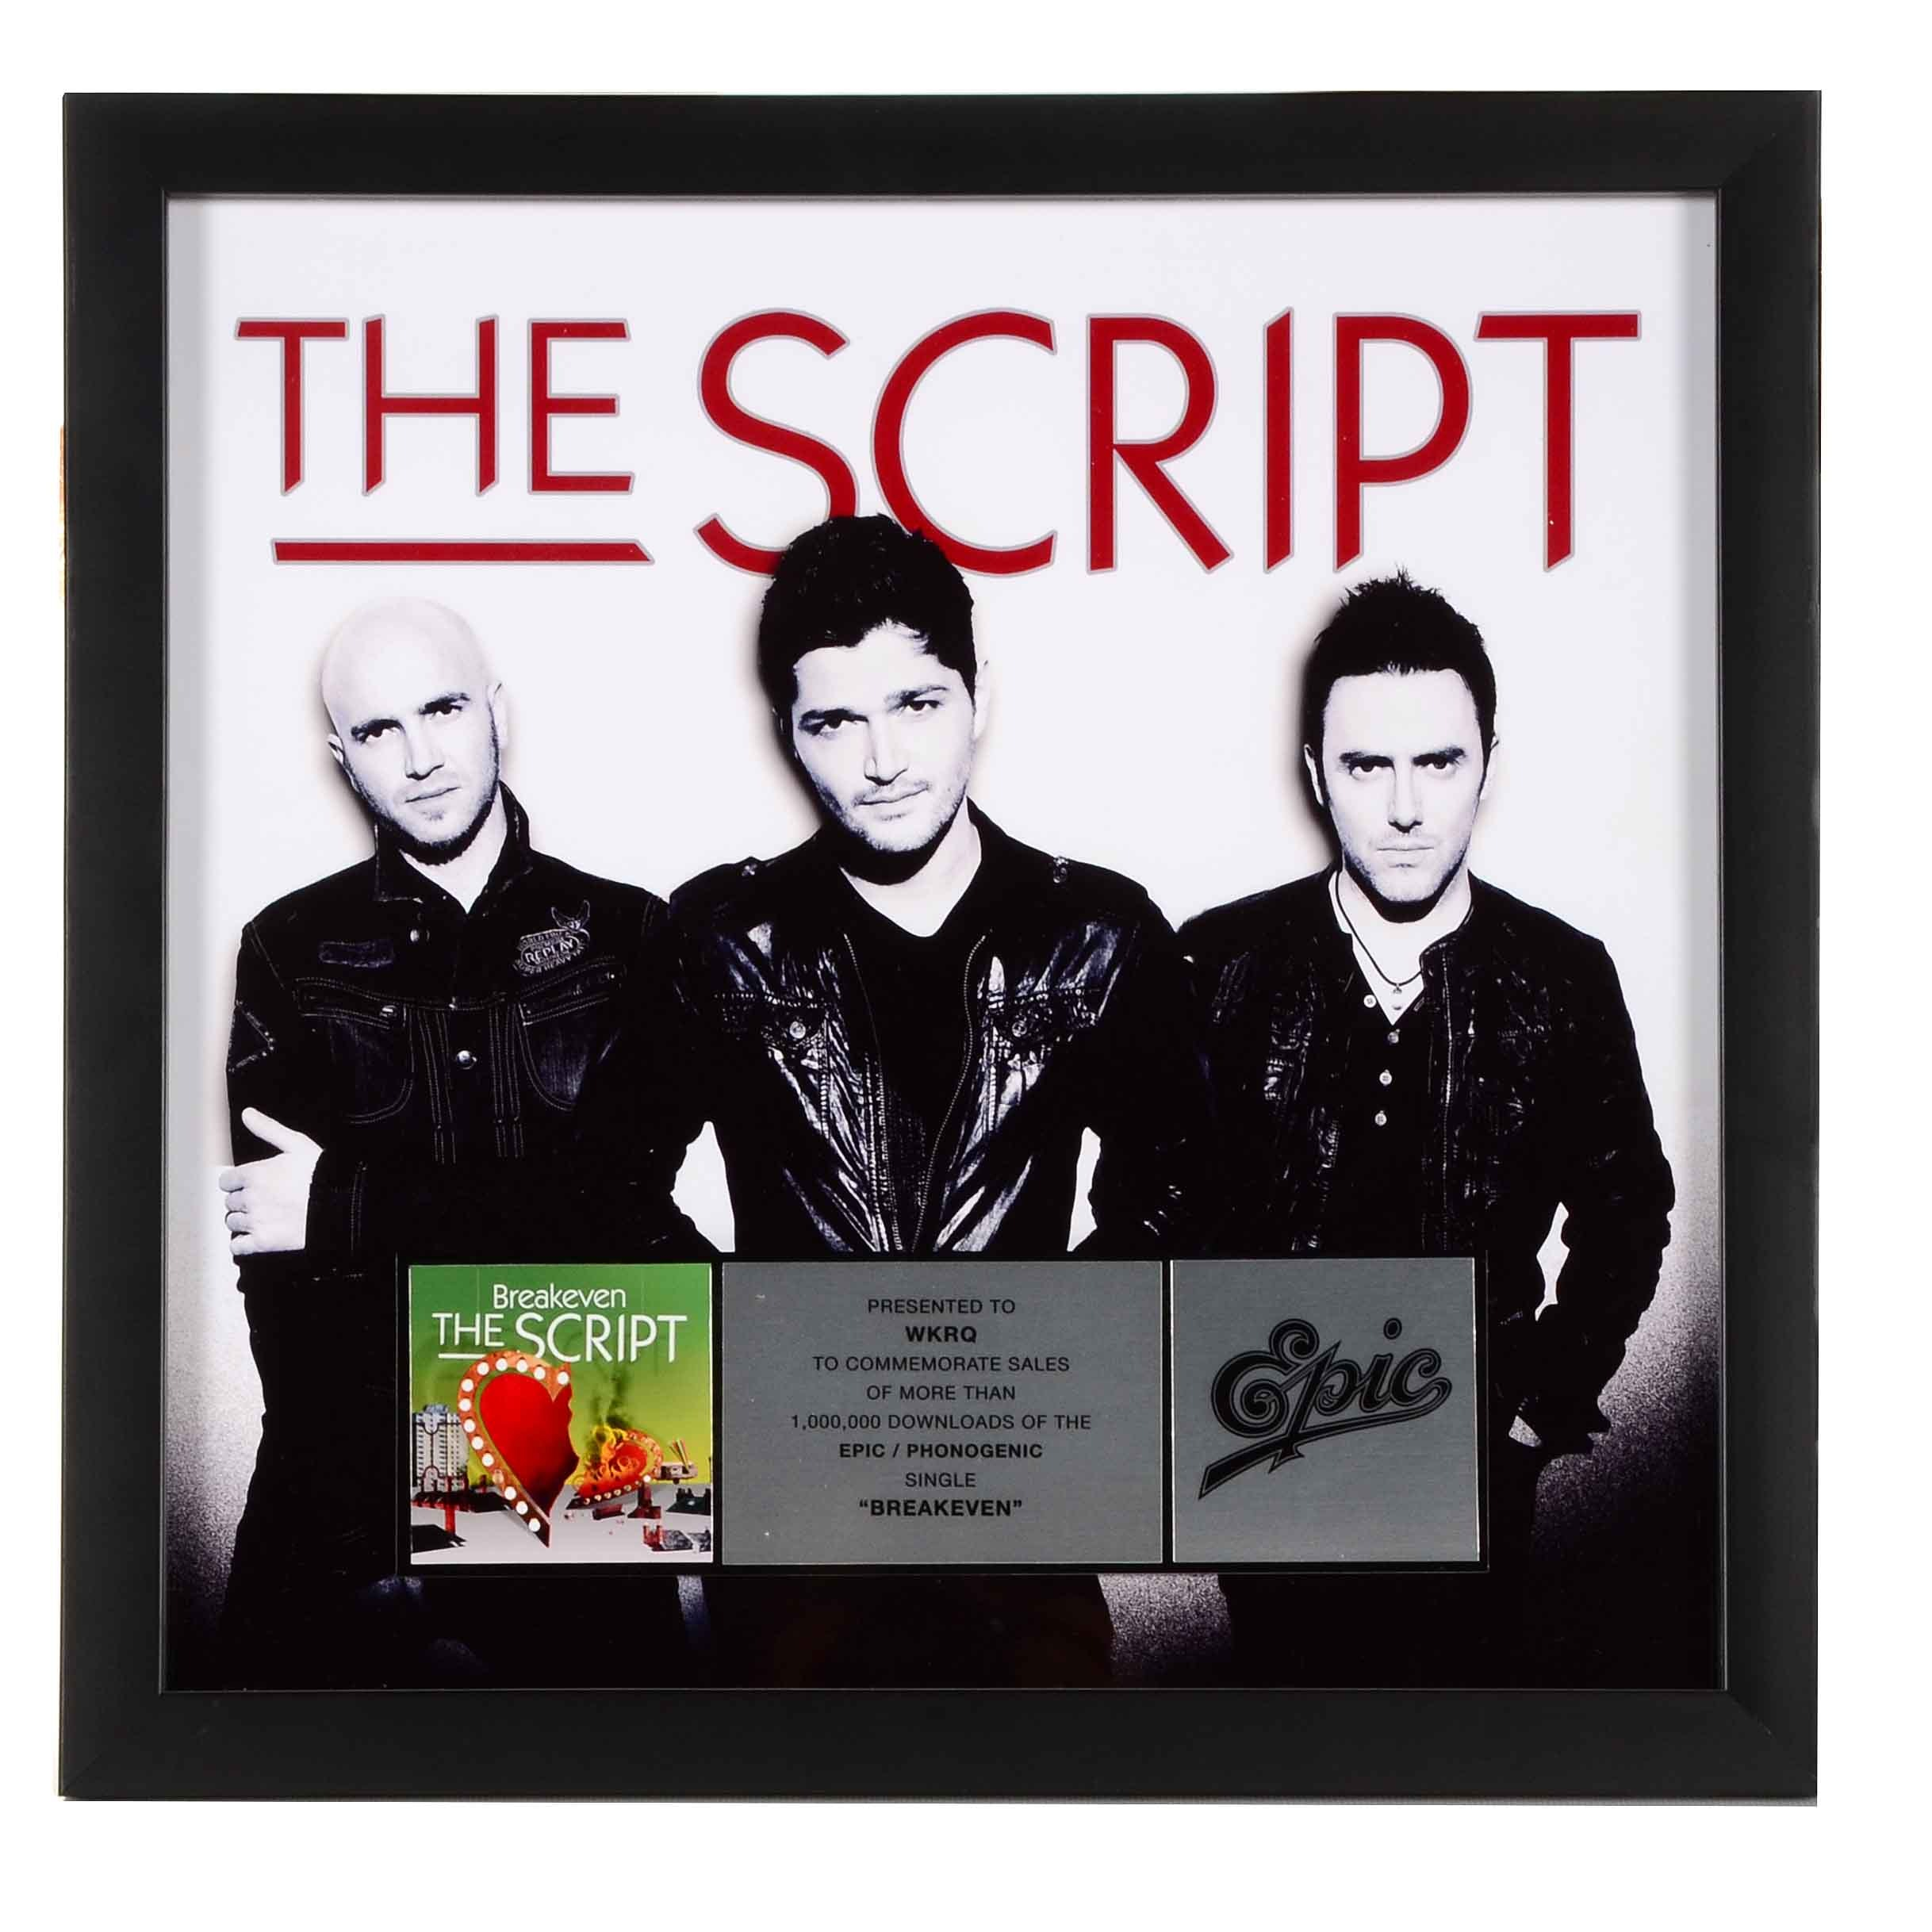 The Script Q102 Award Display